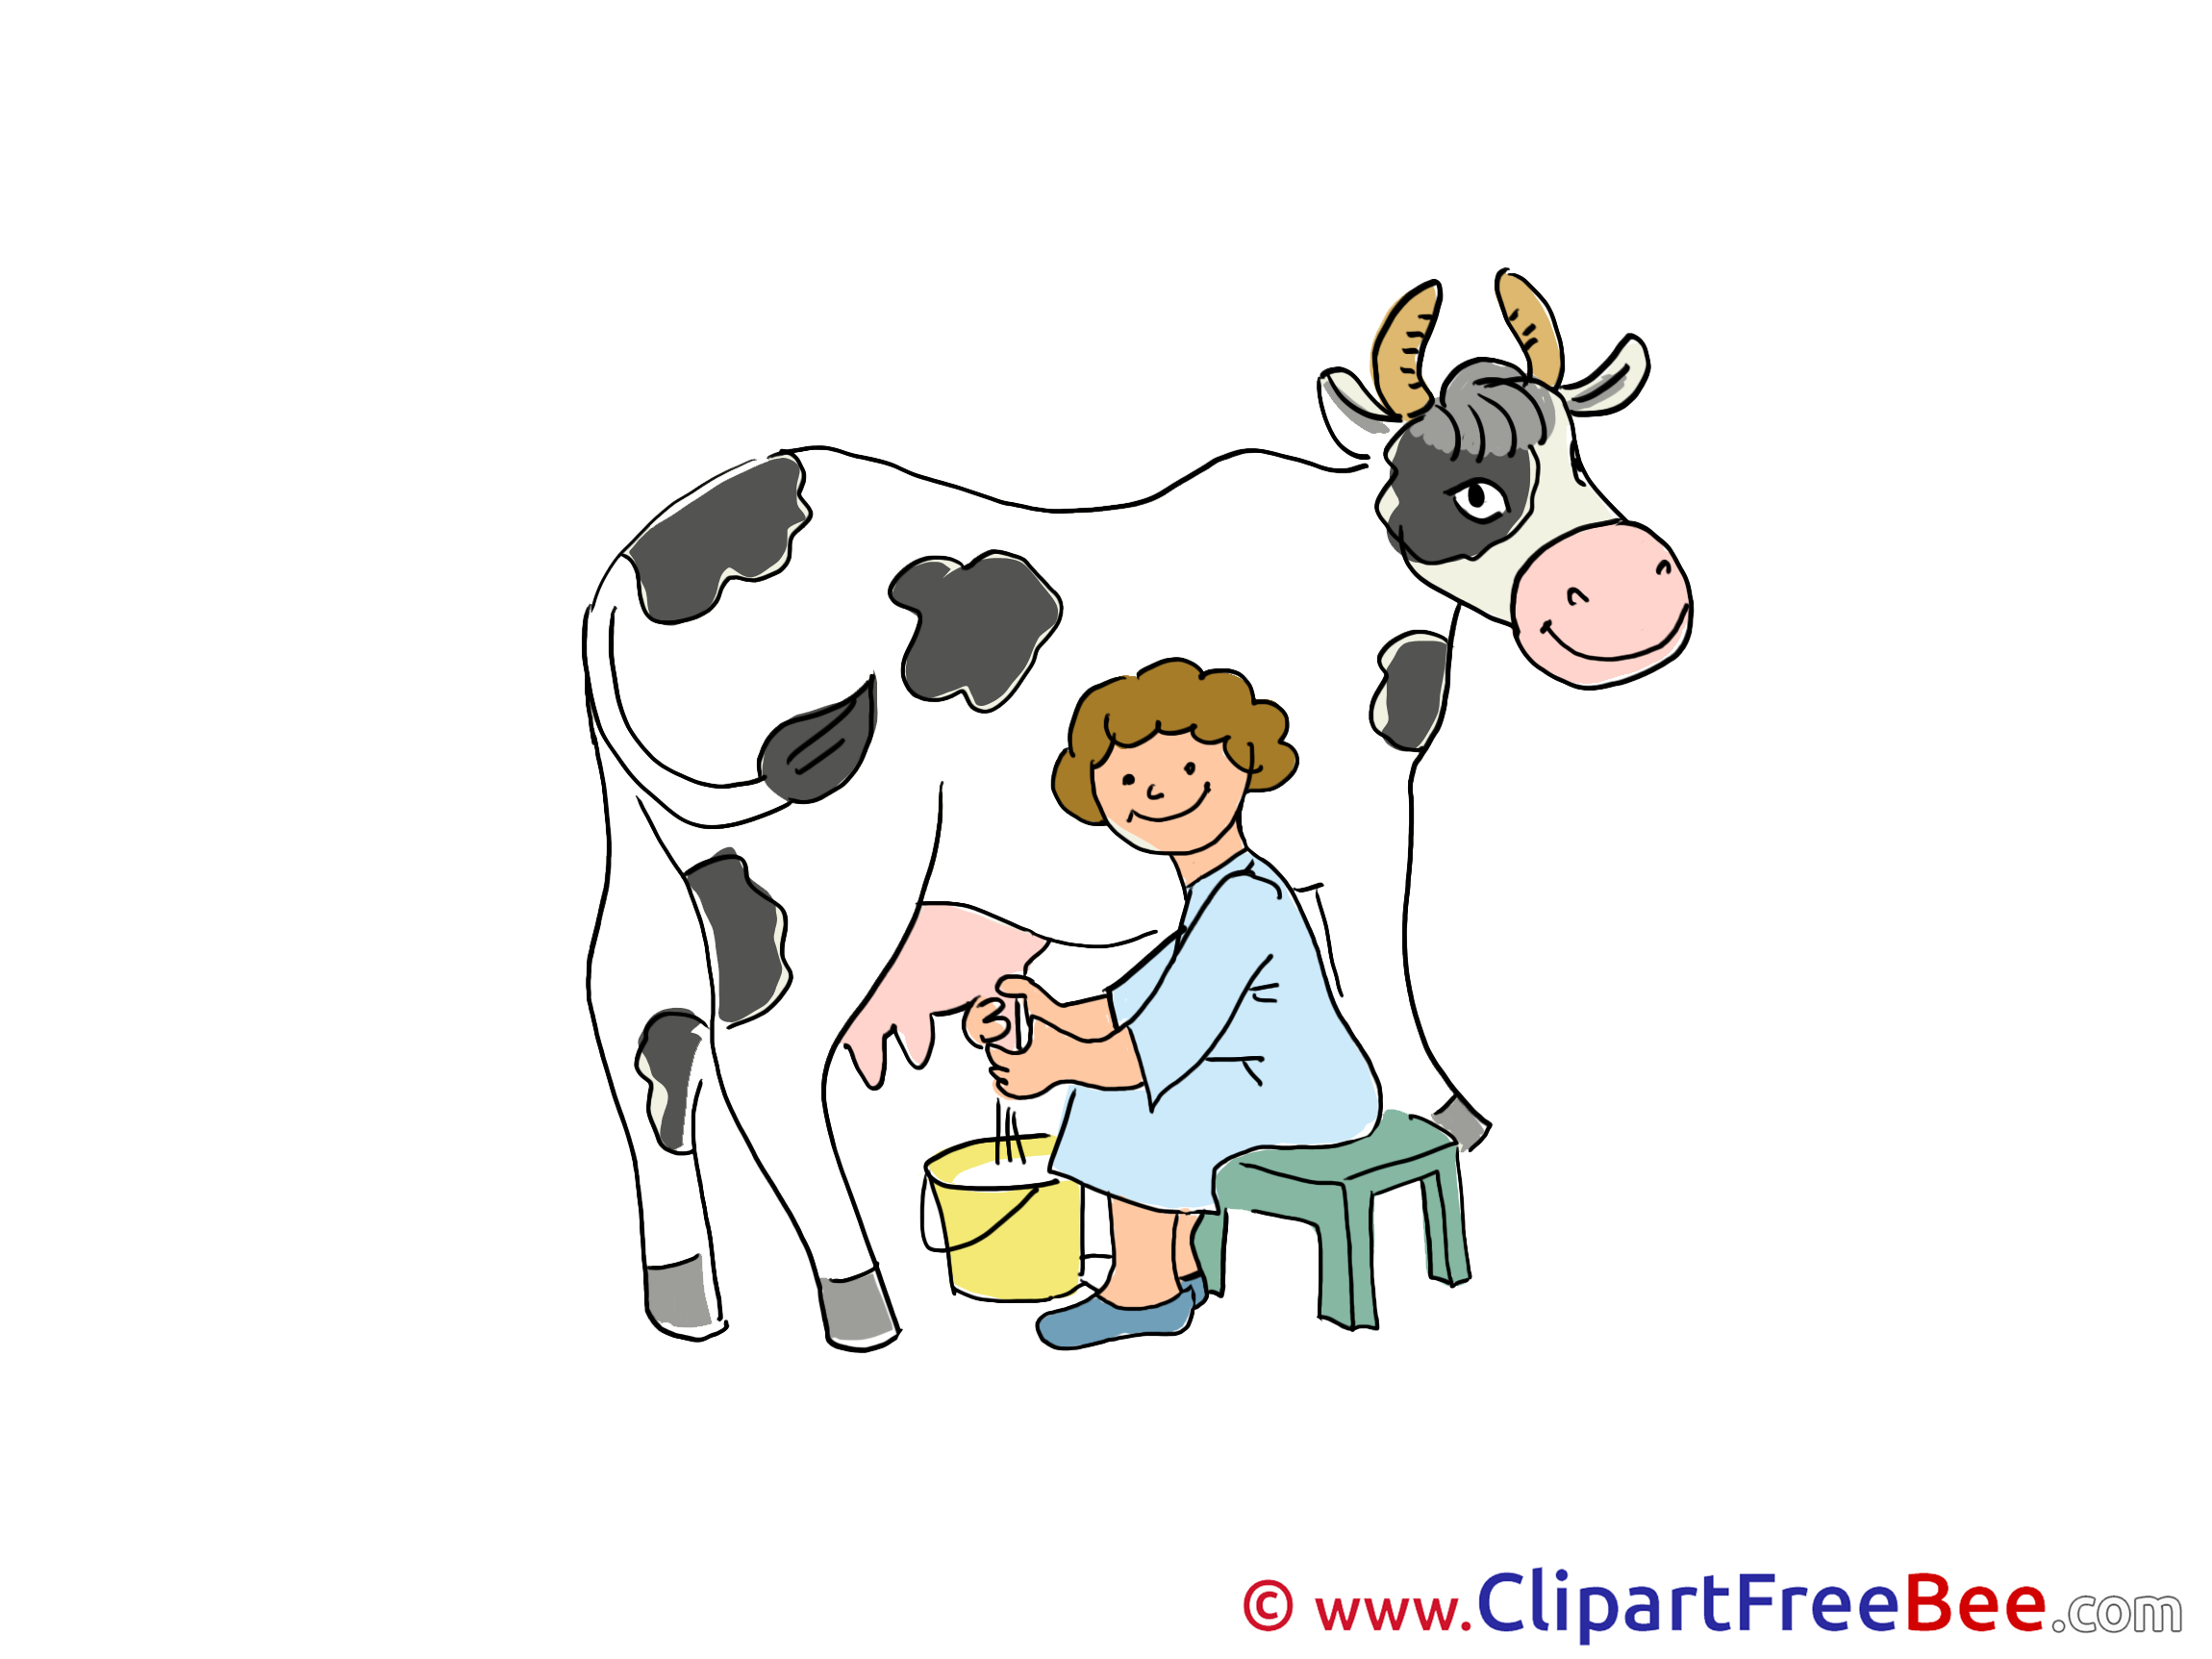 Milkmaid Cow Clipart free Illustrations